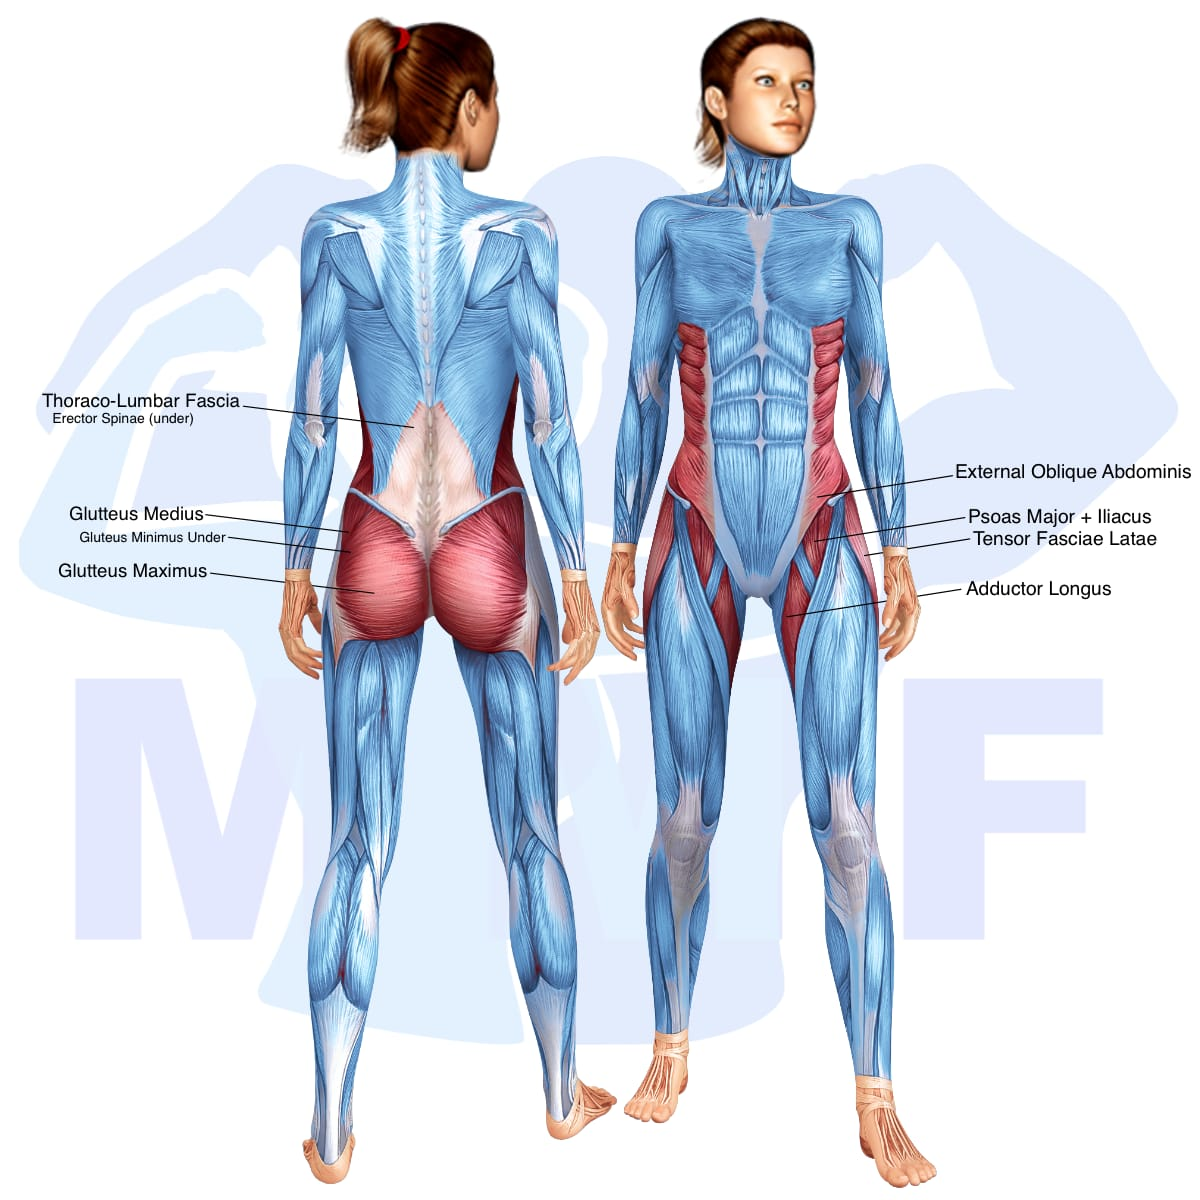 Skeletal muscle systems for a muscular woman, with muscles highlighted in red that are use during resistance band standing twists.